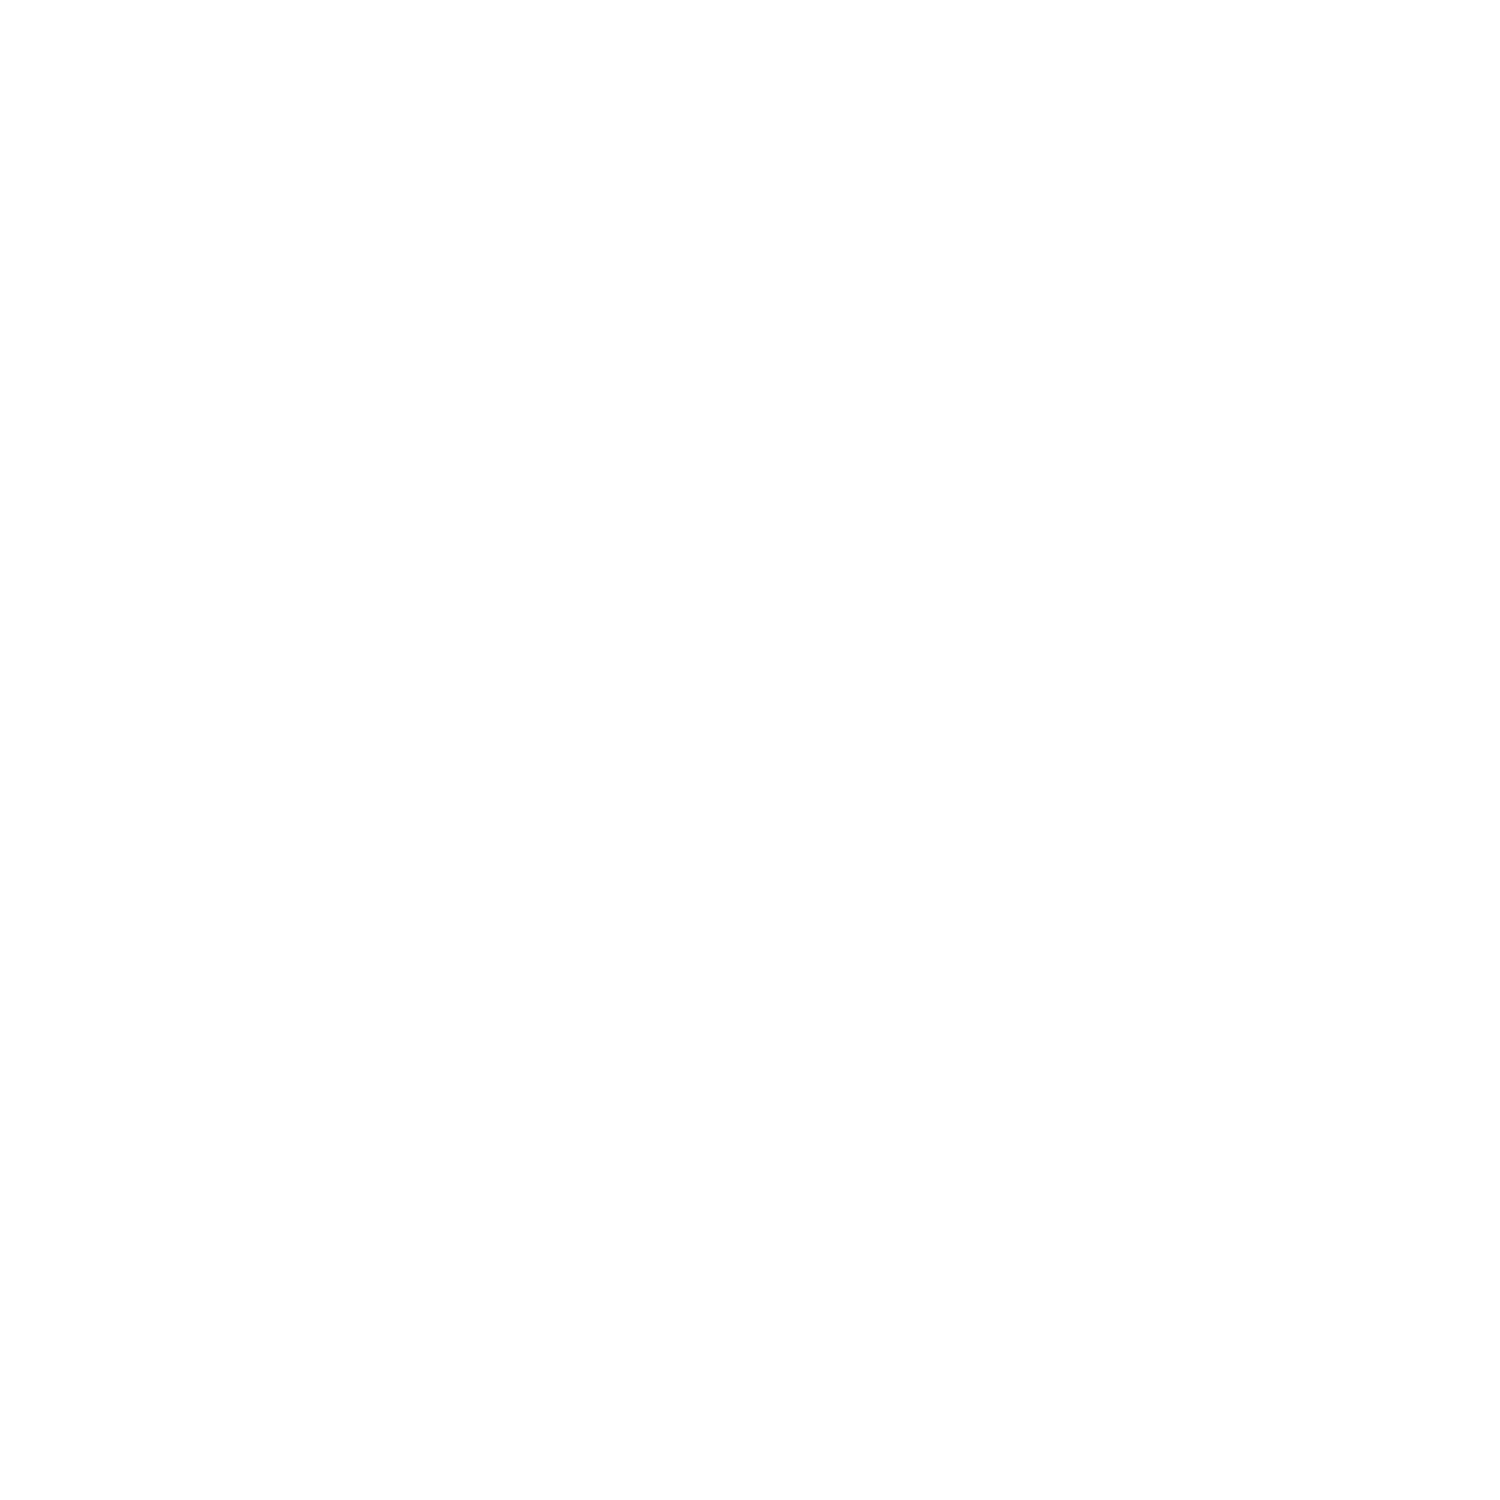 The Great Romance